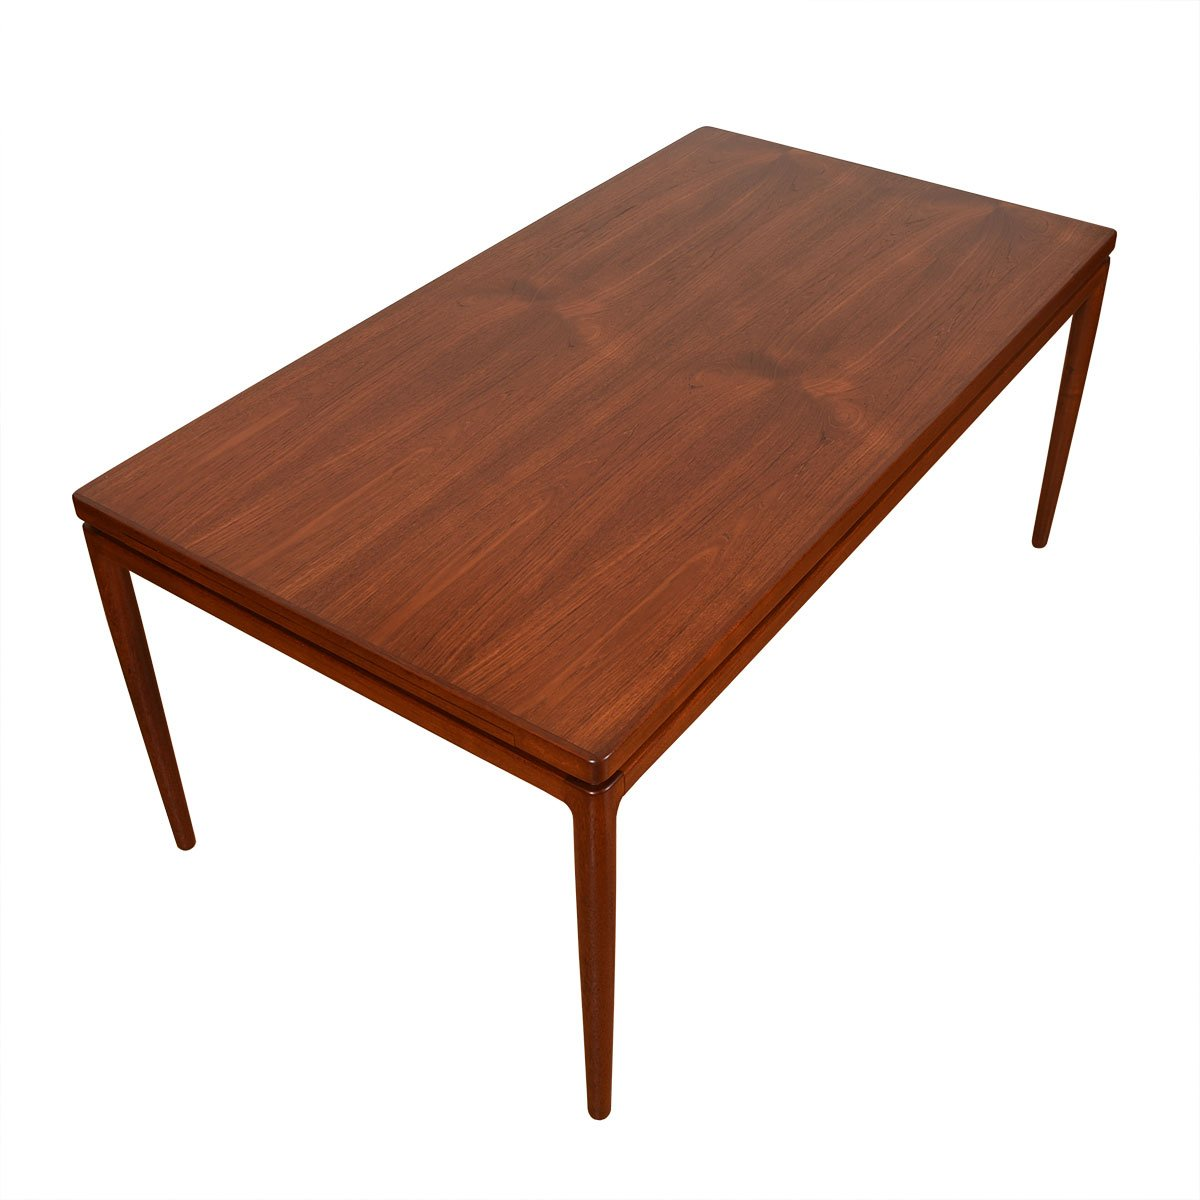 Danish Teak Expanding Dining Table w/ 2 Insert Leaves by Chr. Linneberg